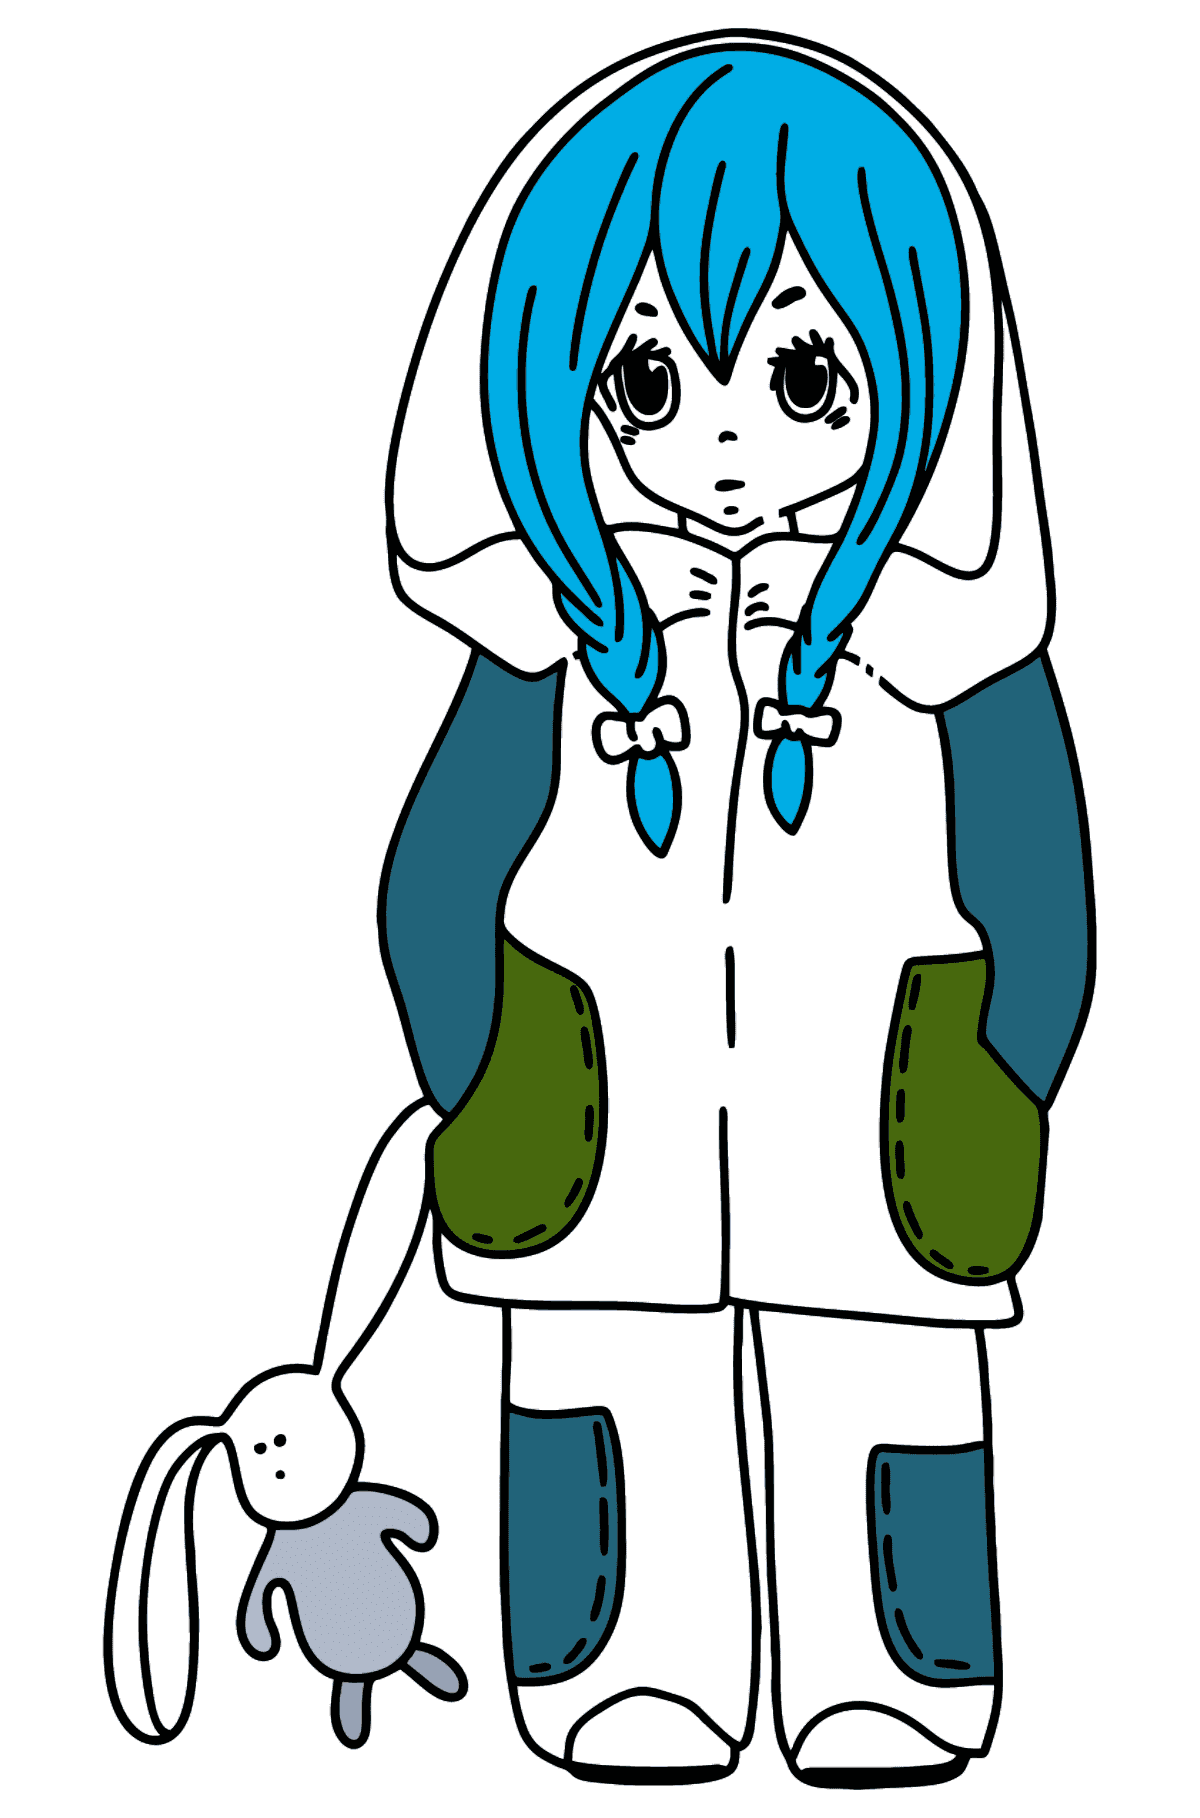 Anime girl with pigtails coloring page - Coloring Pages for Kids